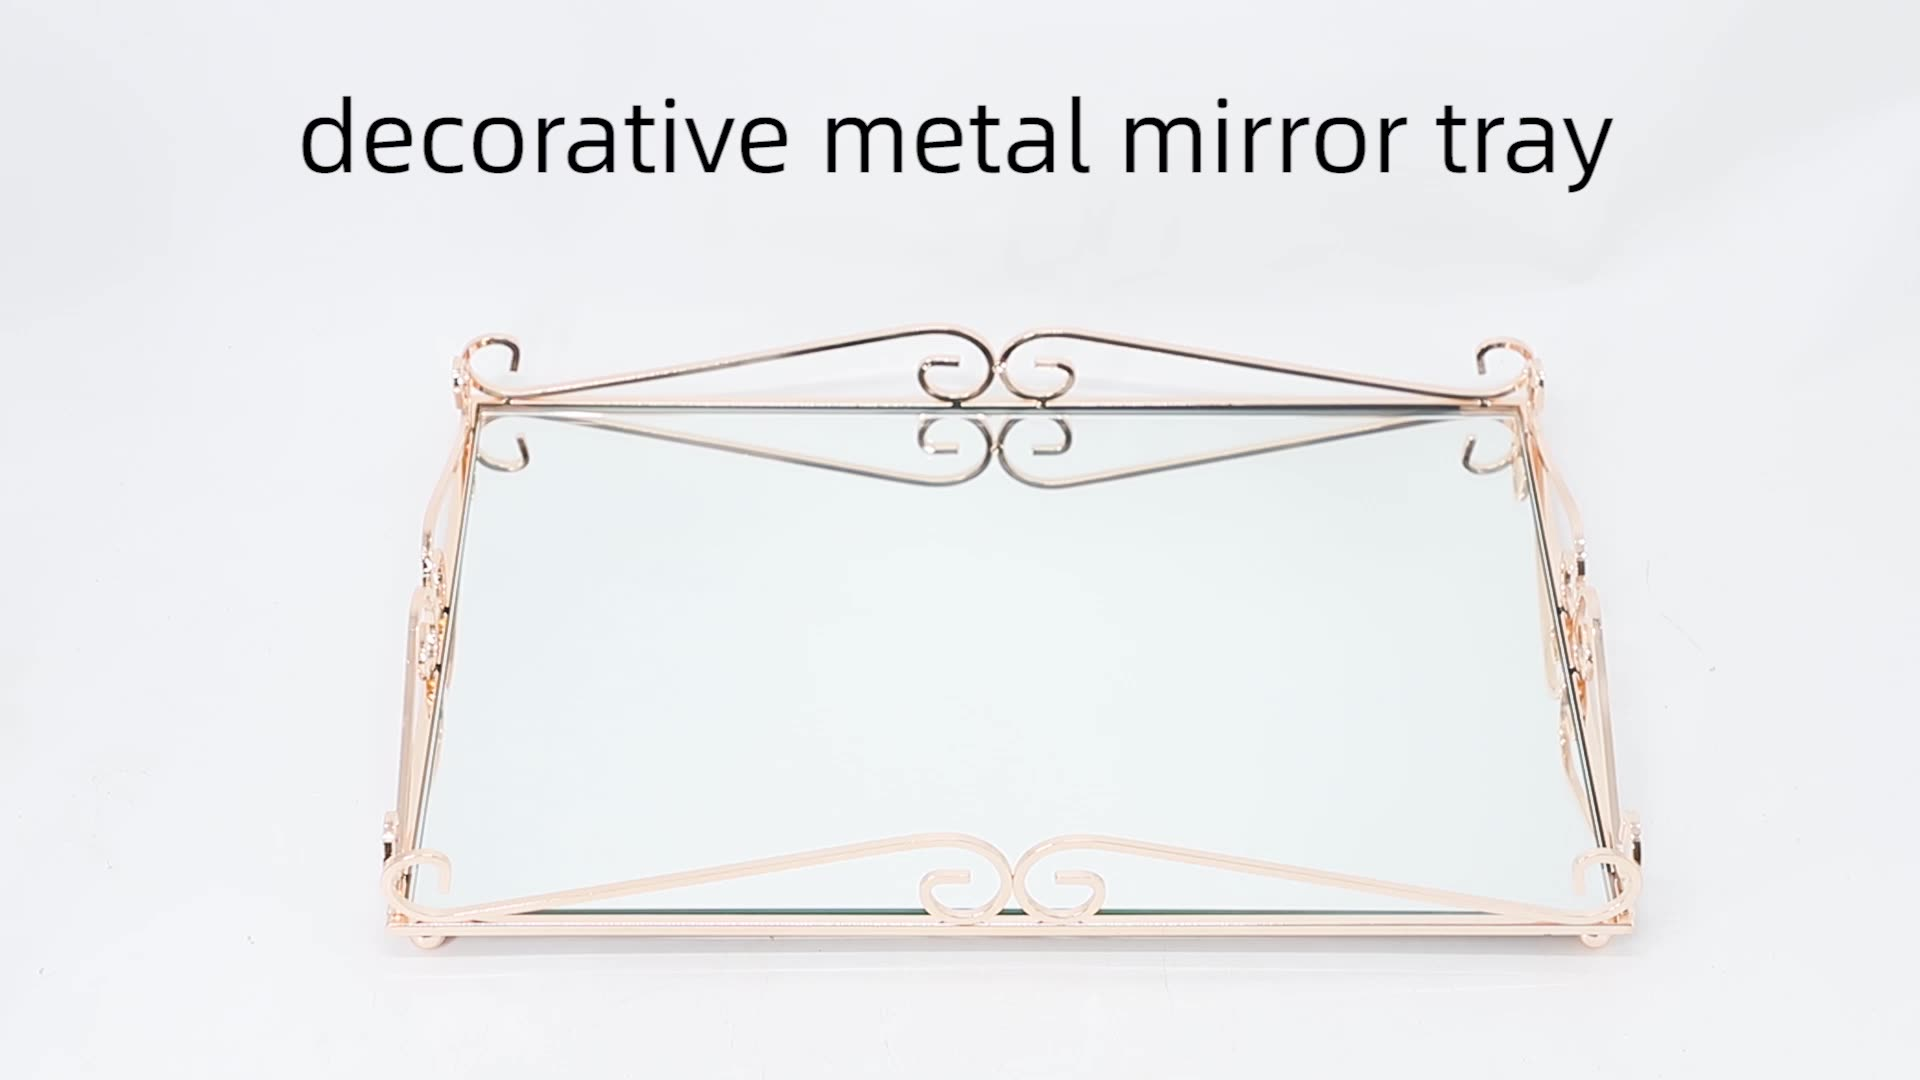 rectangular wedding decoration glass mirror serving tray food serving and luxury decoration Enlarge the sense of space